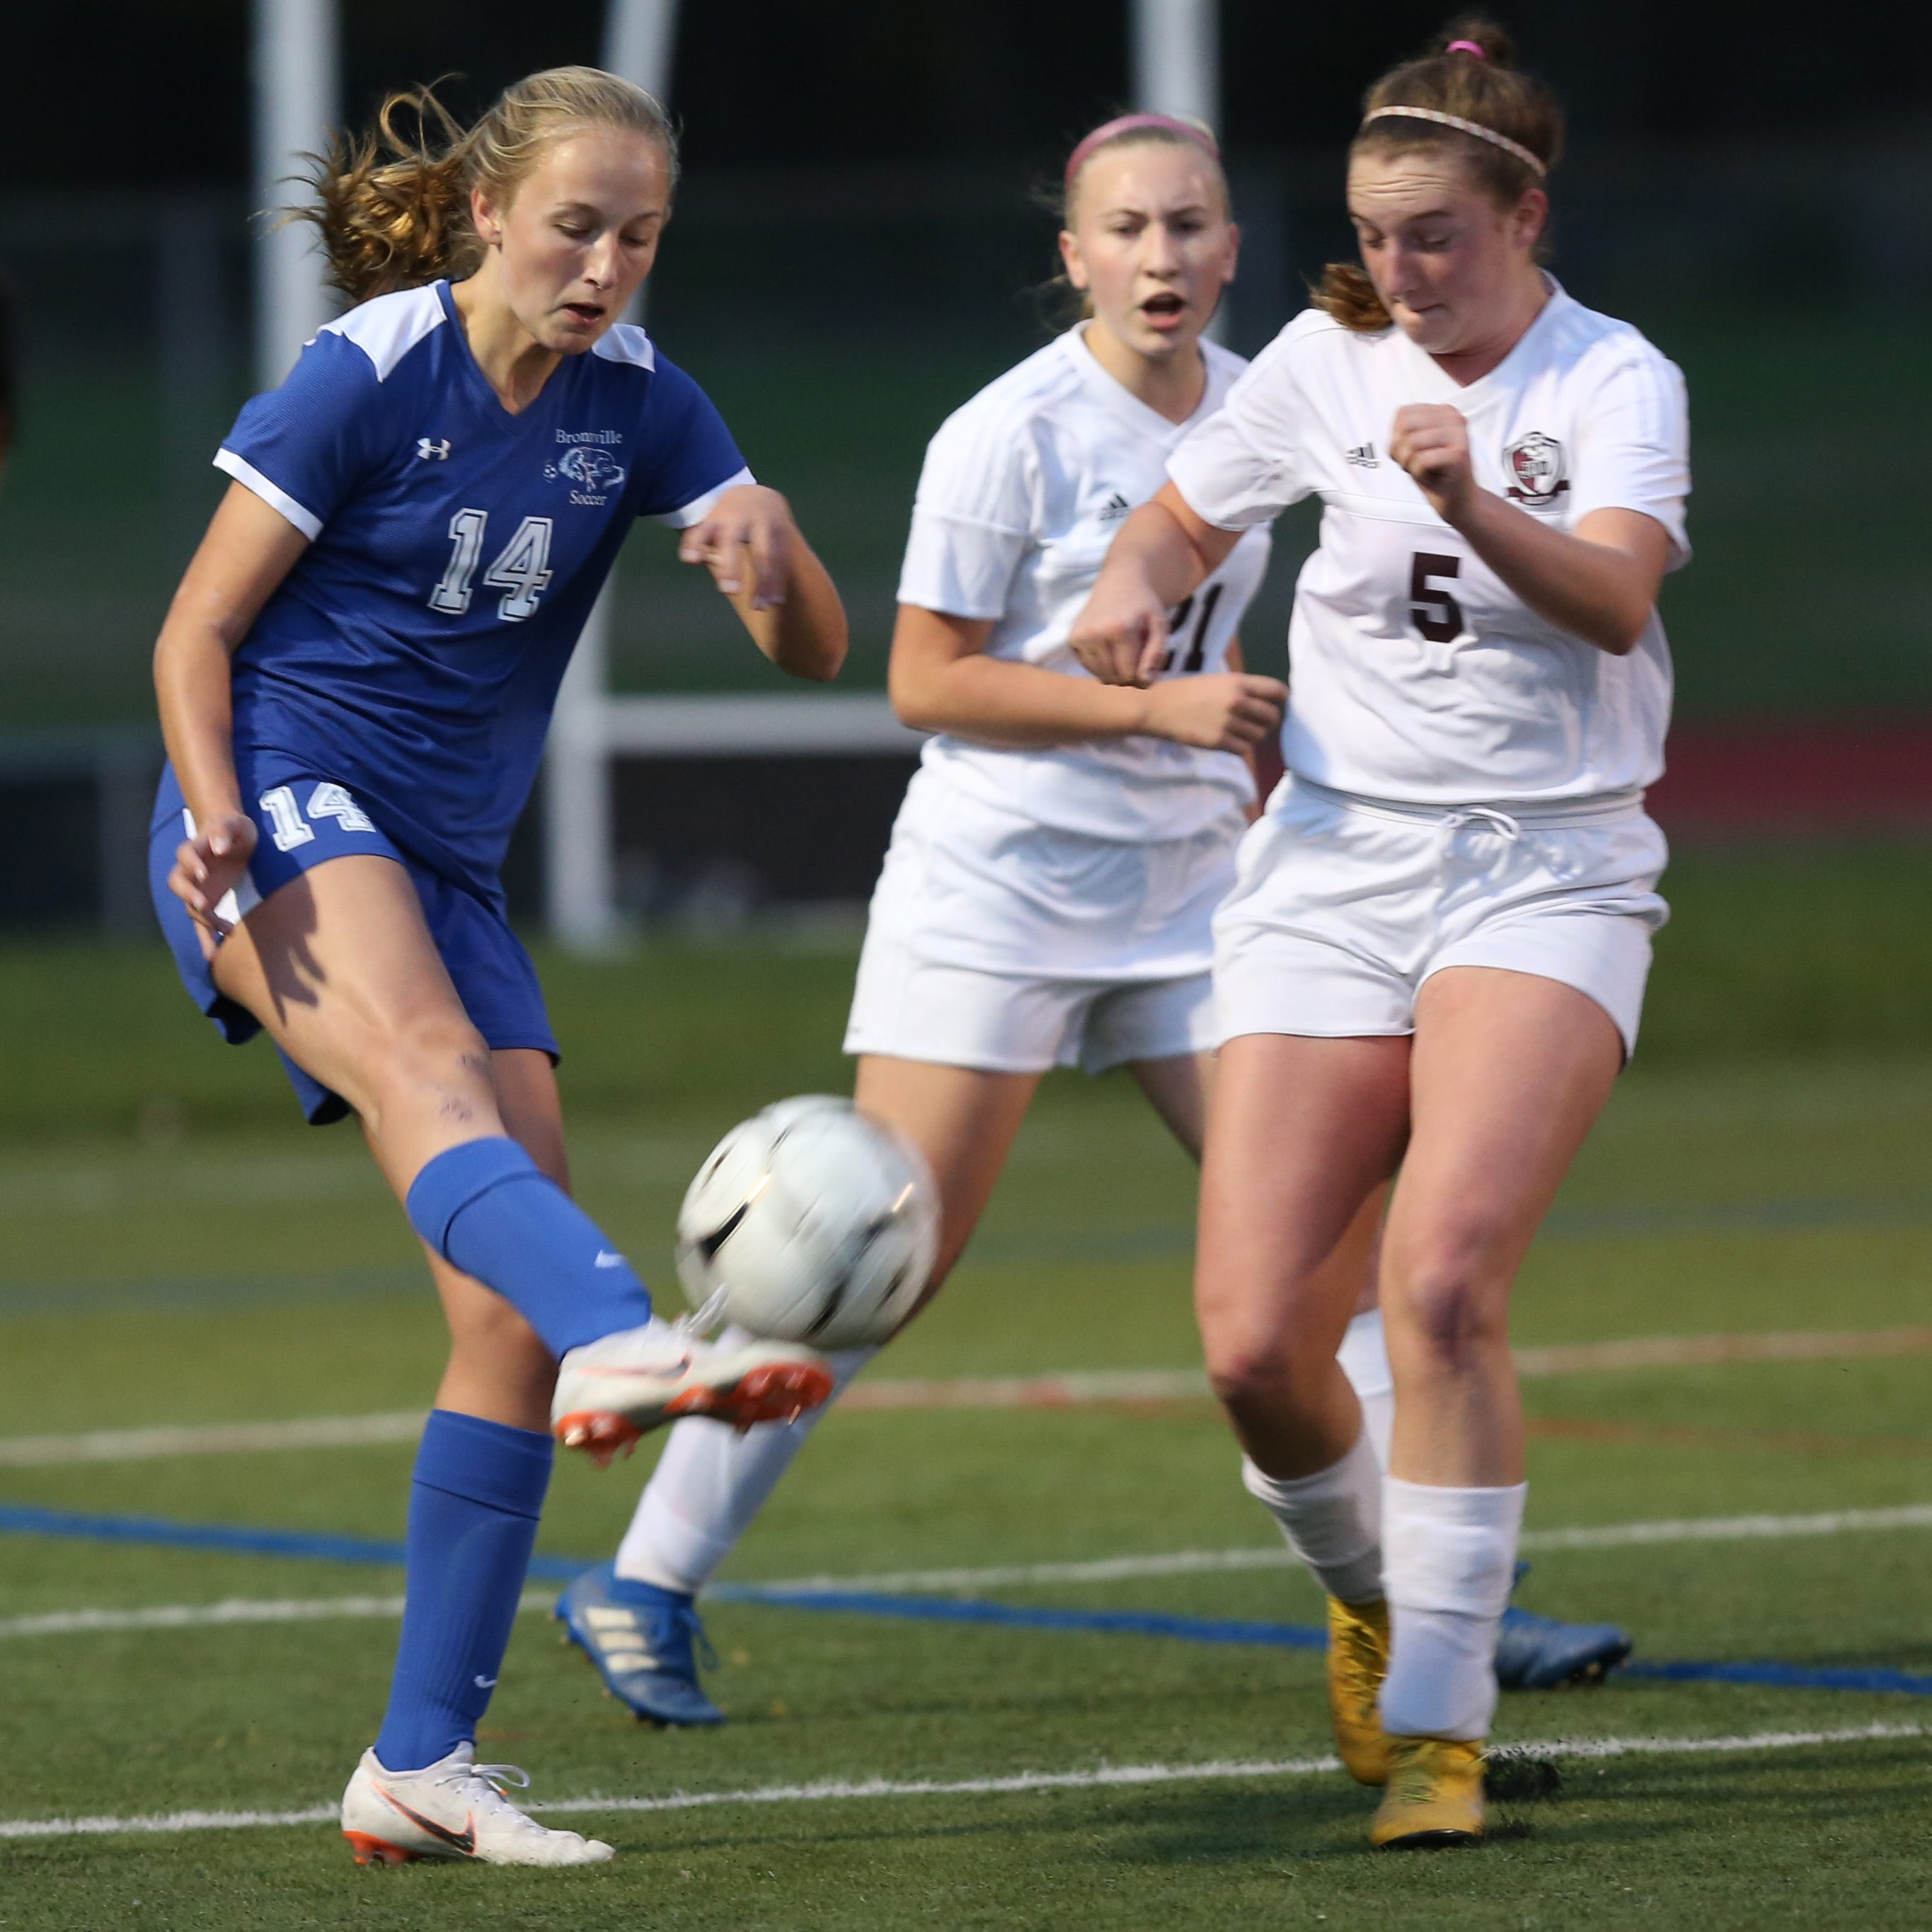 Girls soccer: Westchester/Putnam Player of the Year finalists